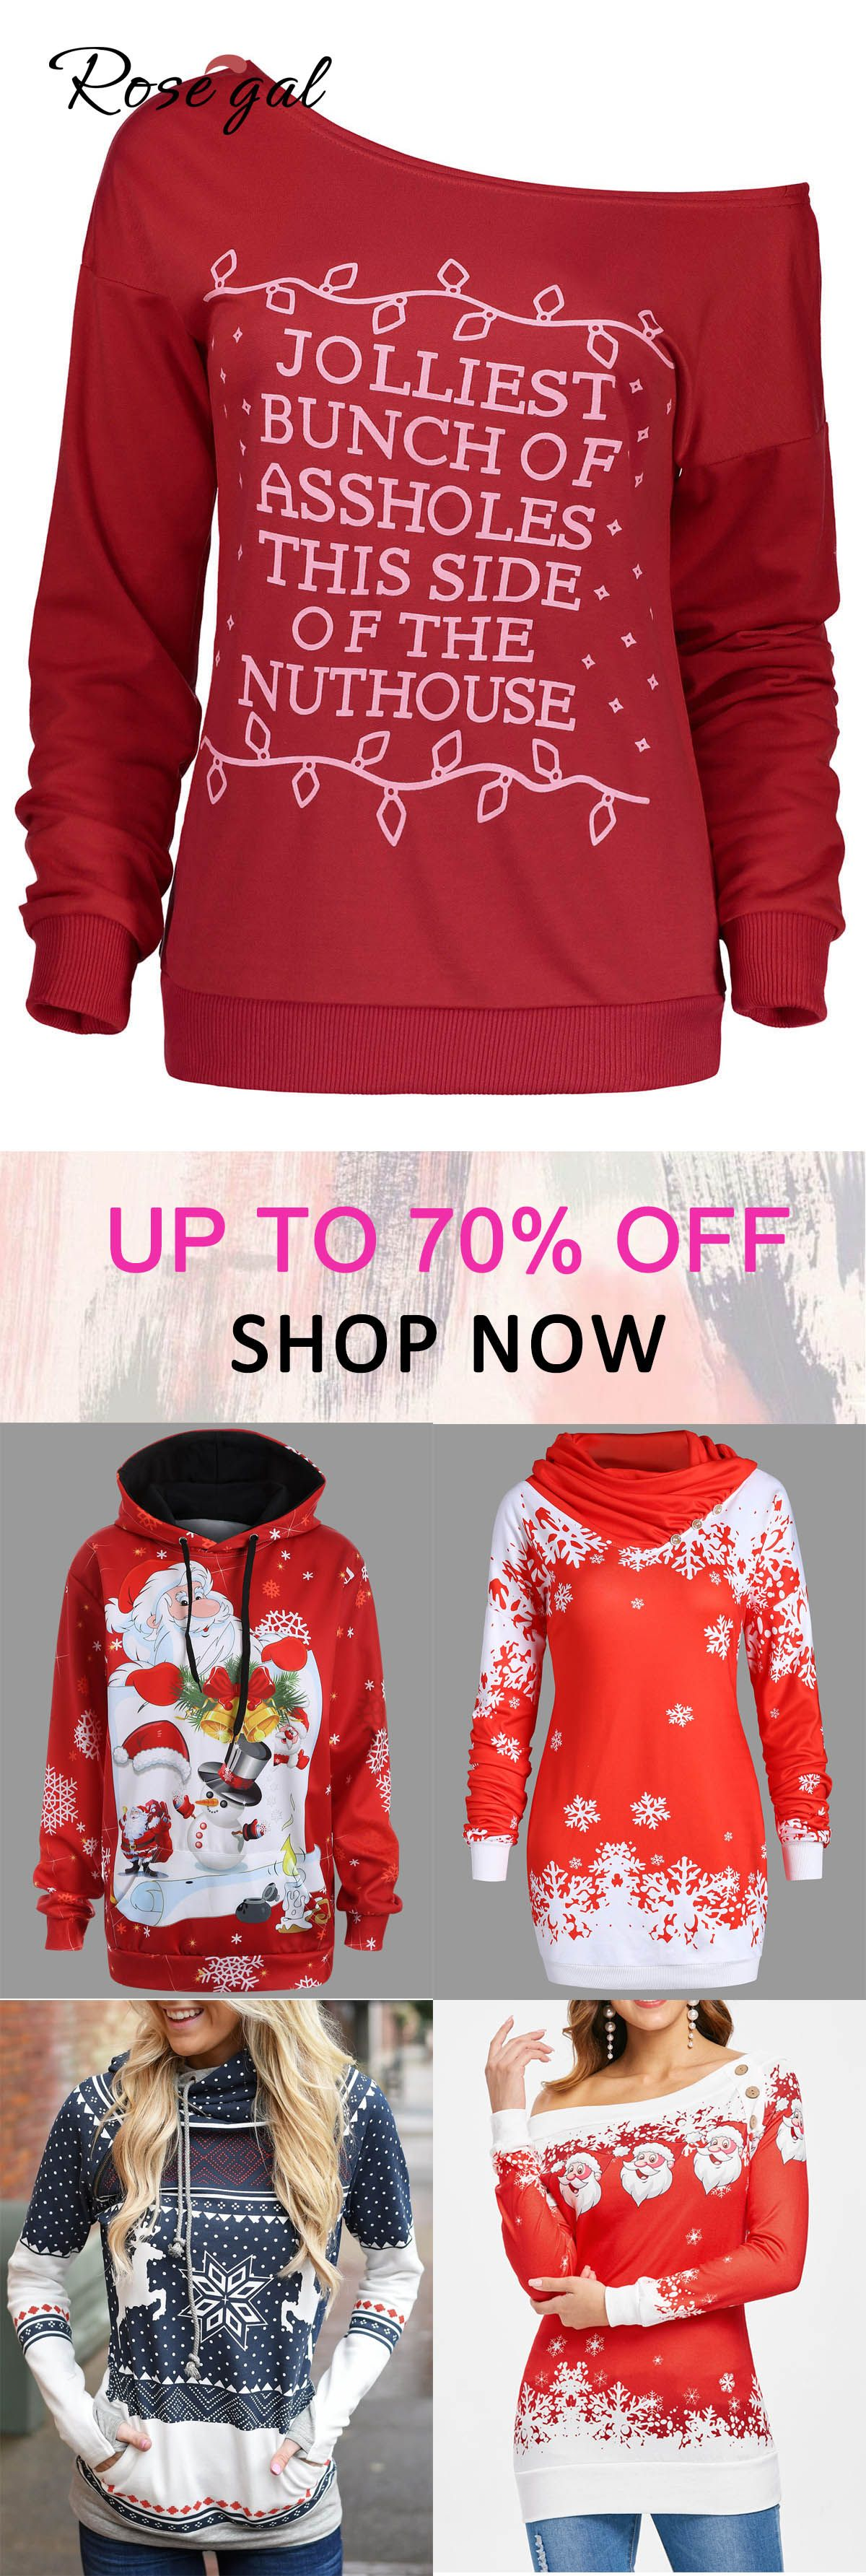 Christmas Tops For Women.Free Shipping Over 45 Up To 70 Off Rosegal Christmas